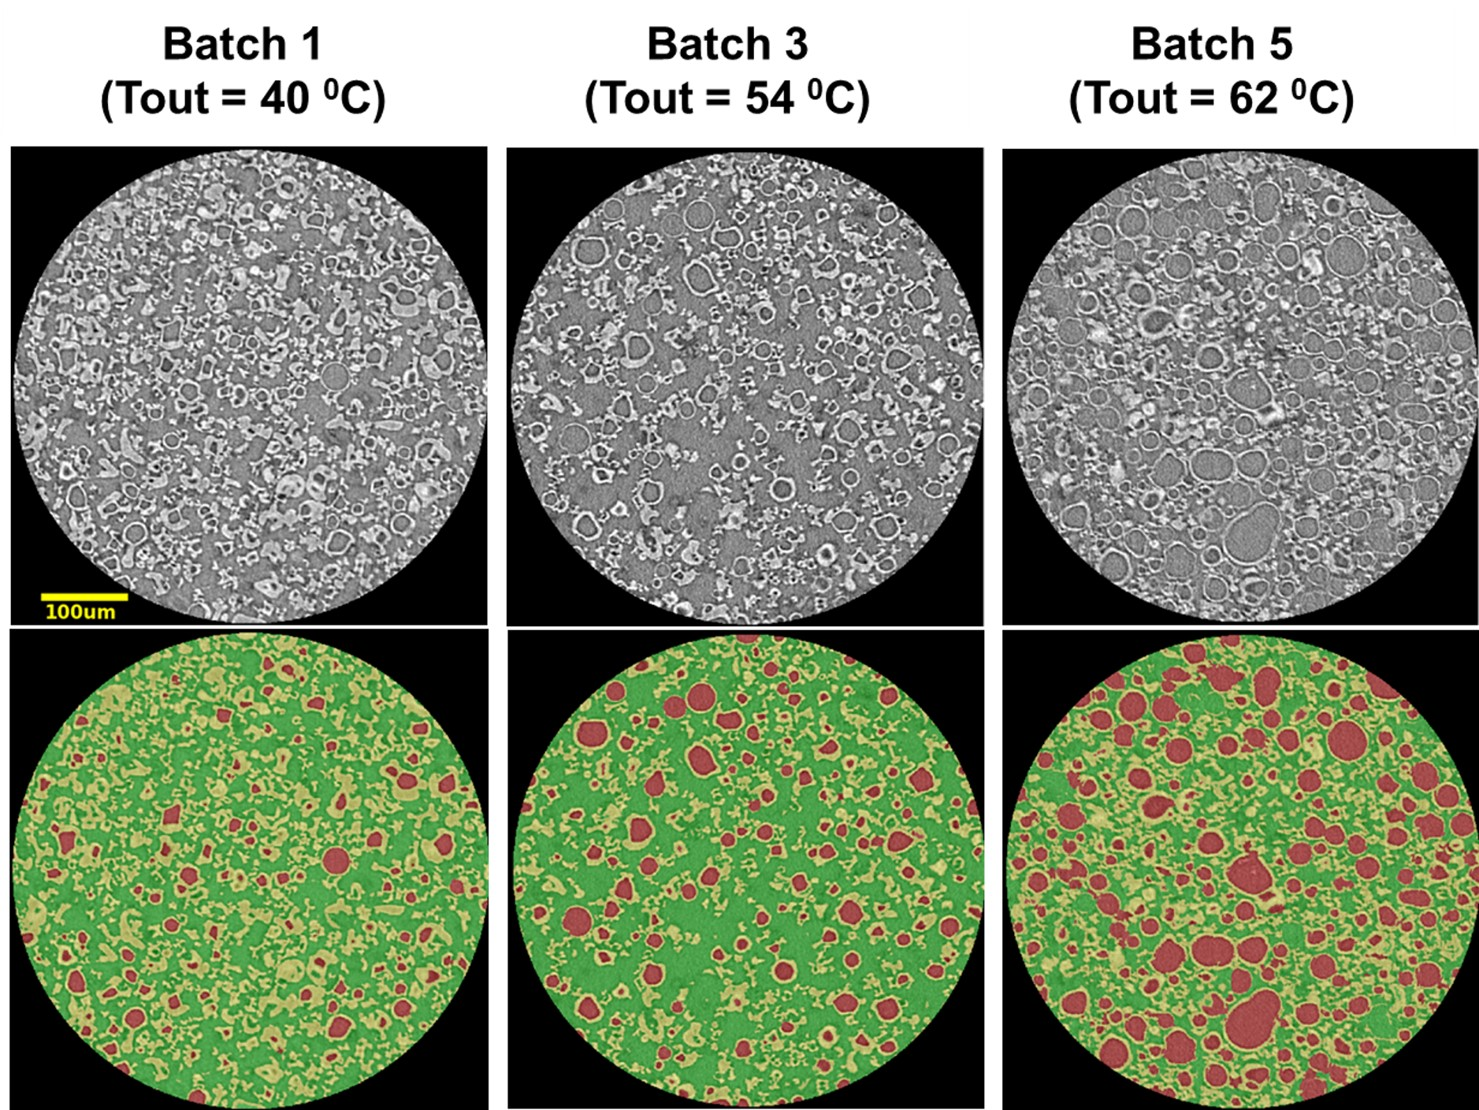 Microstructure imaging for spray drying process development used in an amorphous solid dispersion